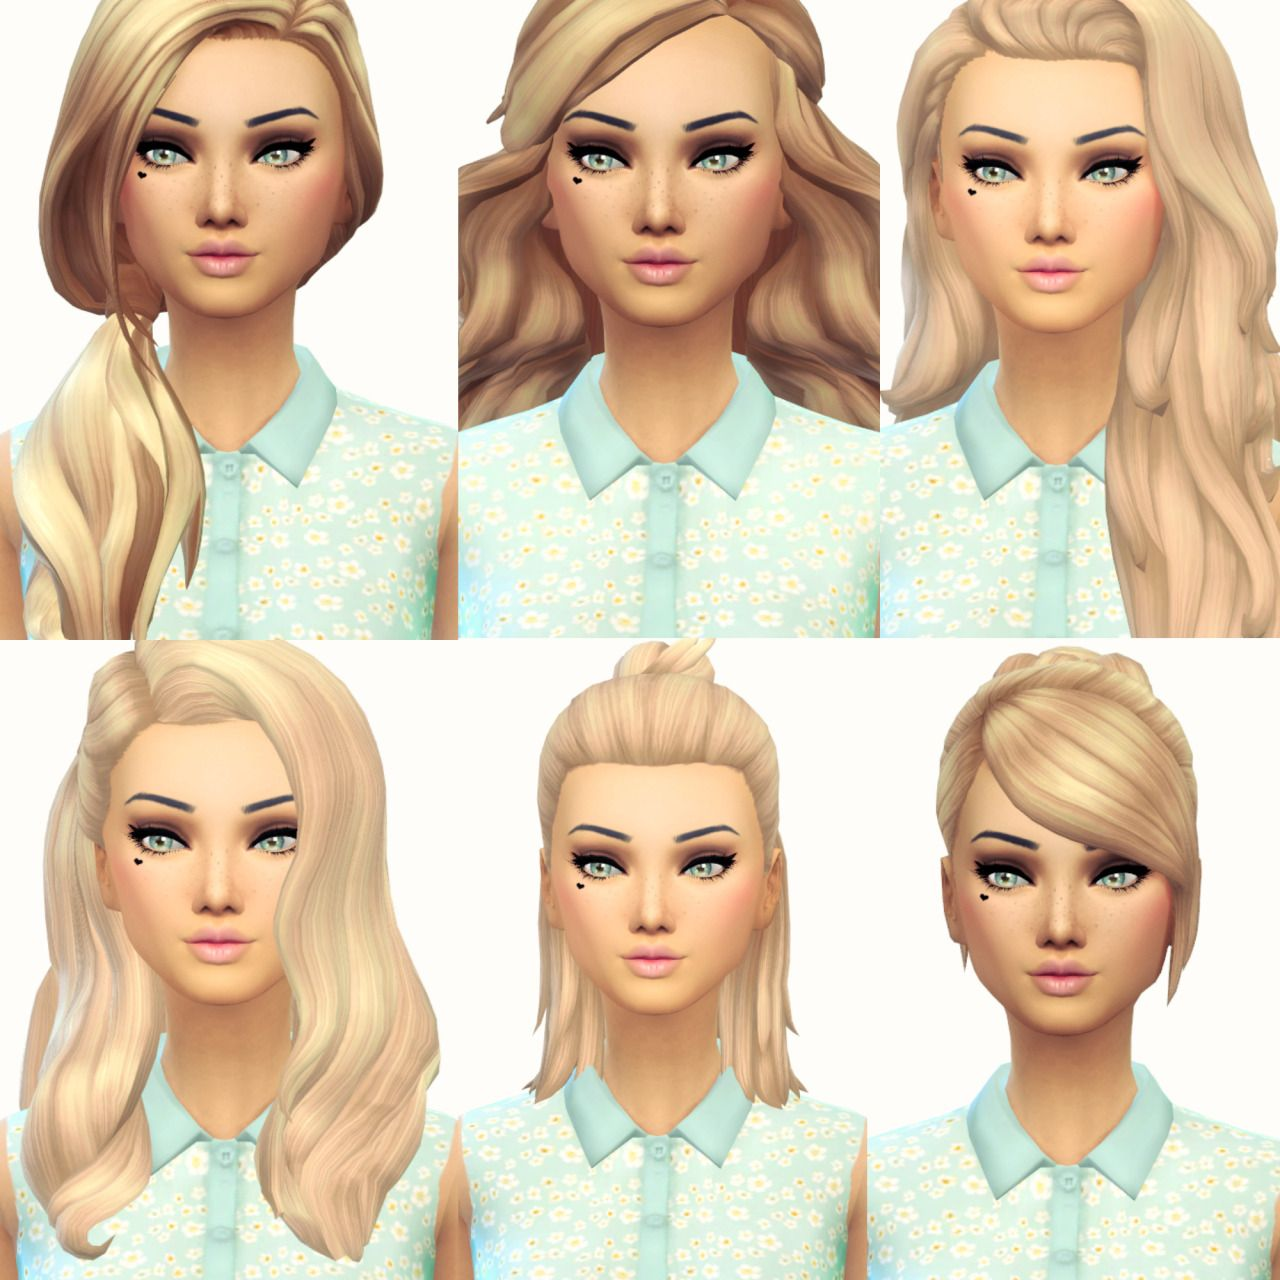 Sims 4 Hairstyles: Current Favourite Maxis Match Hair 3 (From Left To Right